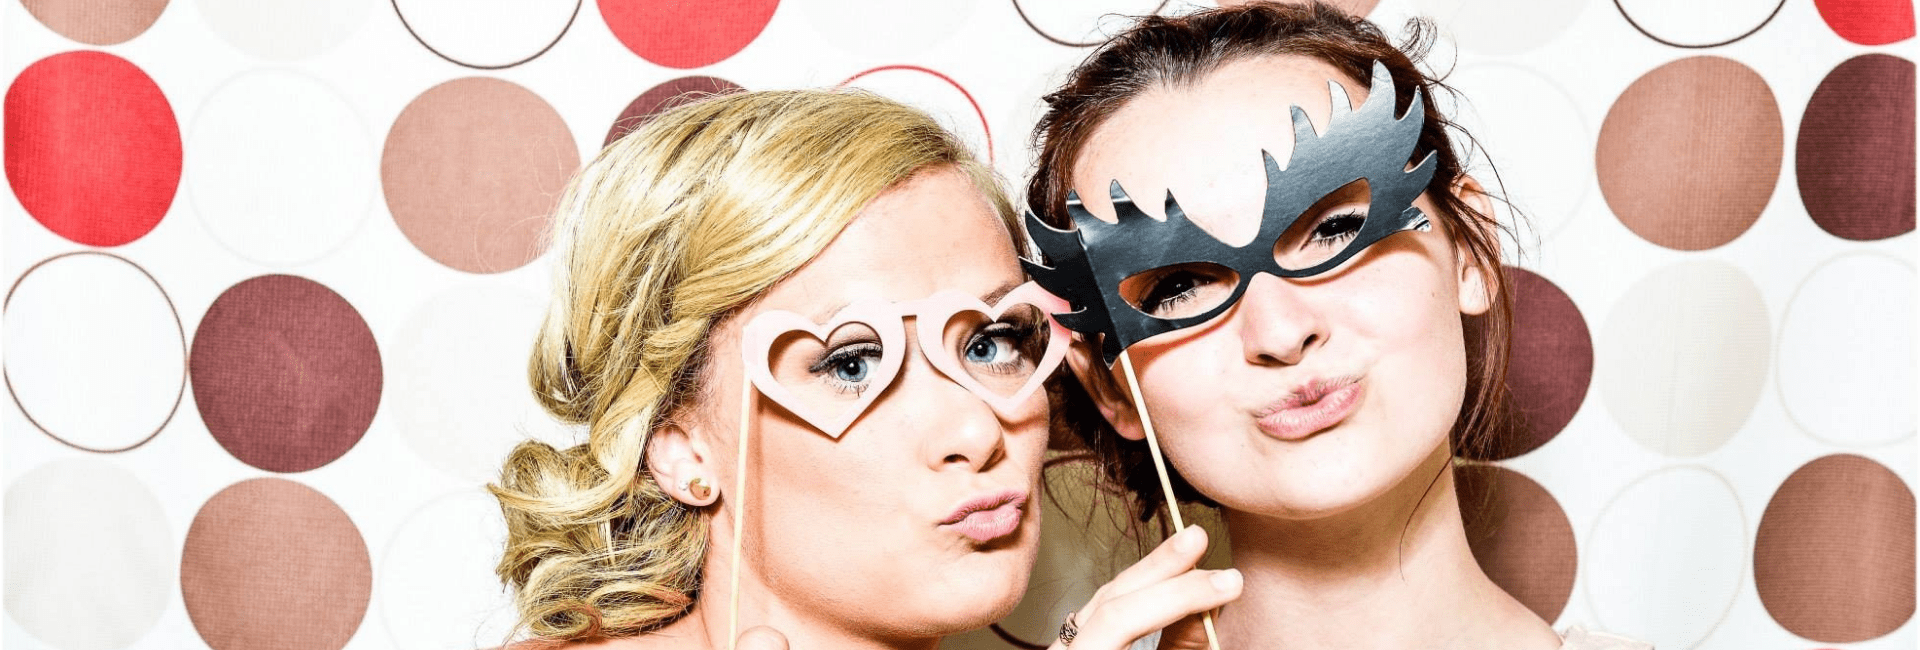 mariage photobooth.png